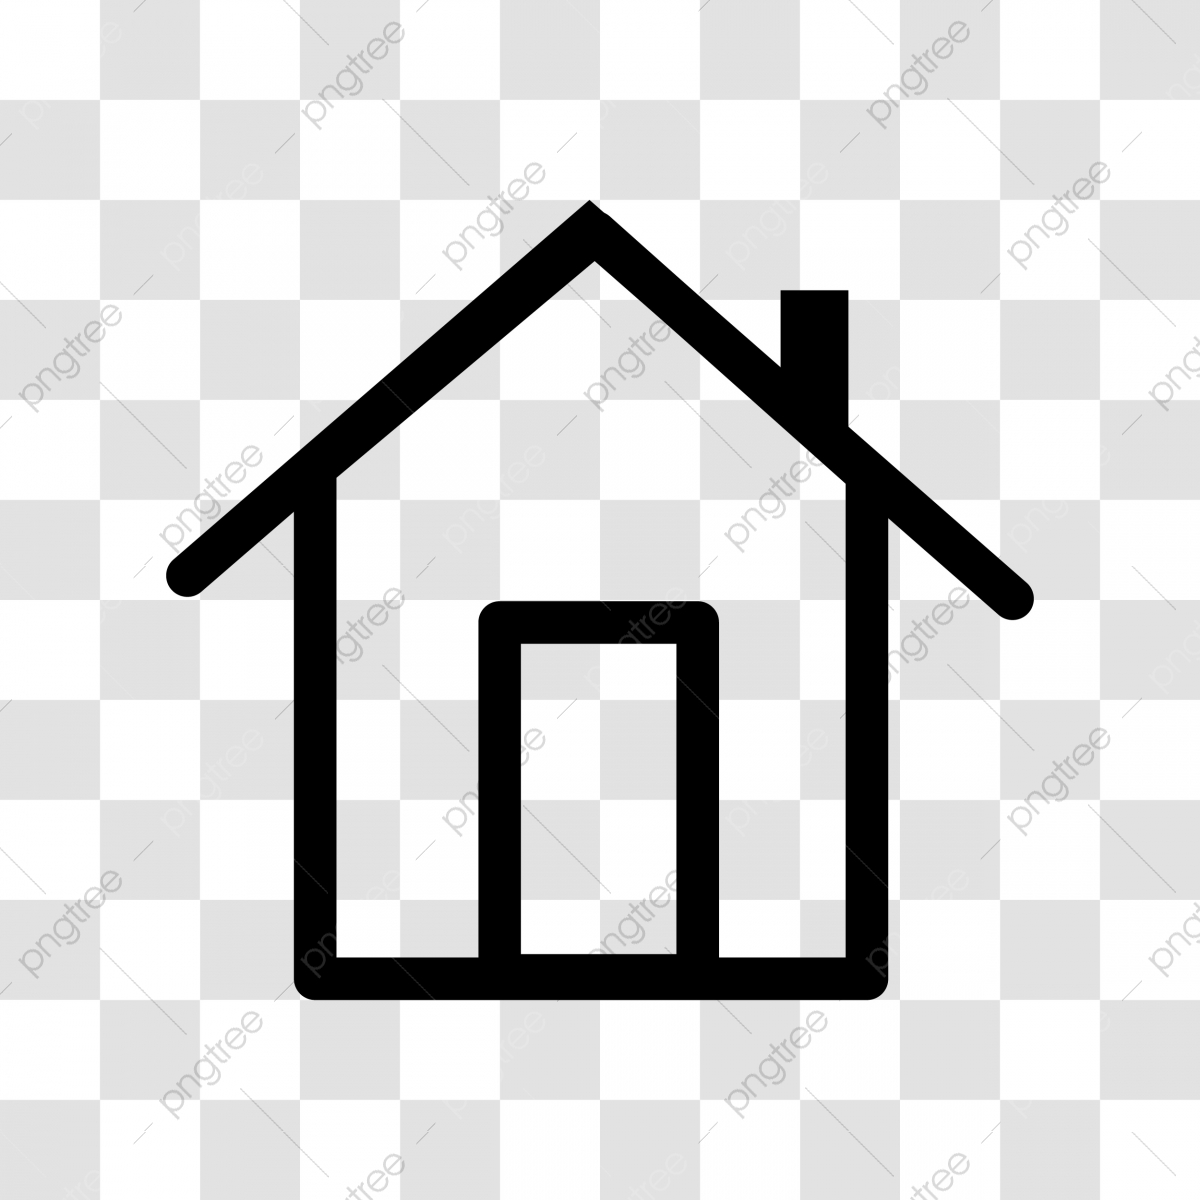 Home Icon Png Images Vector And Psd Files Free Download On Pngtree